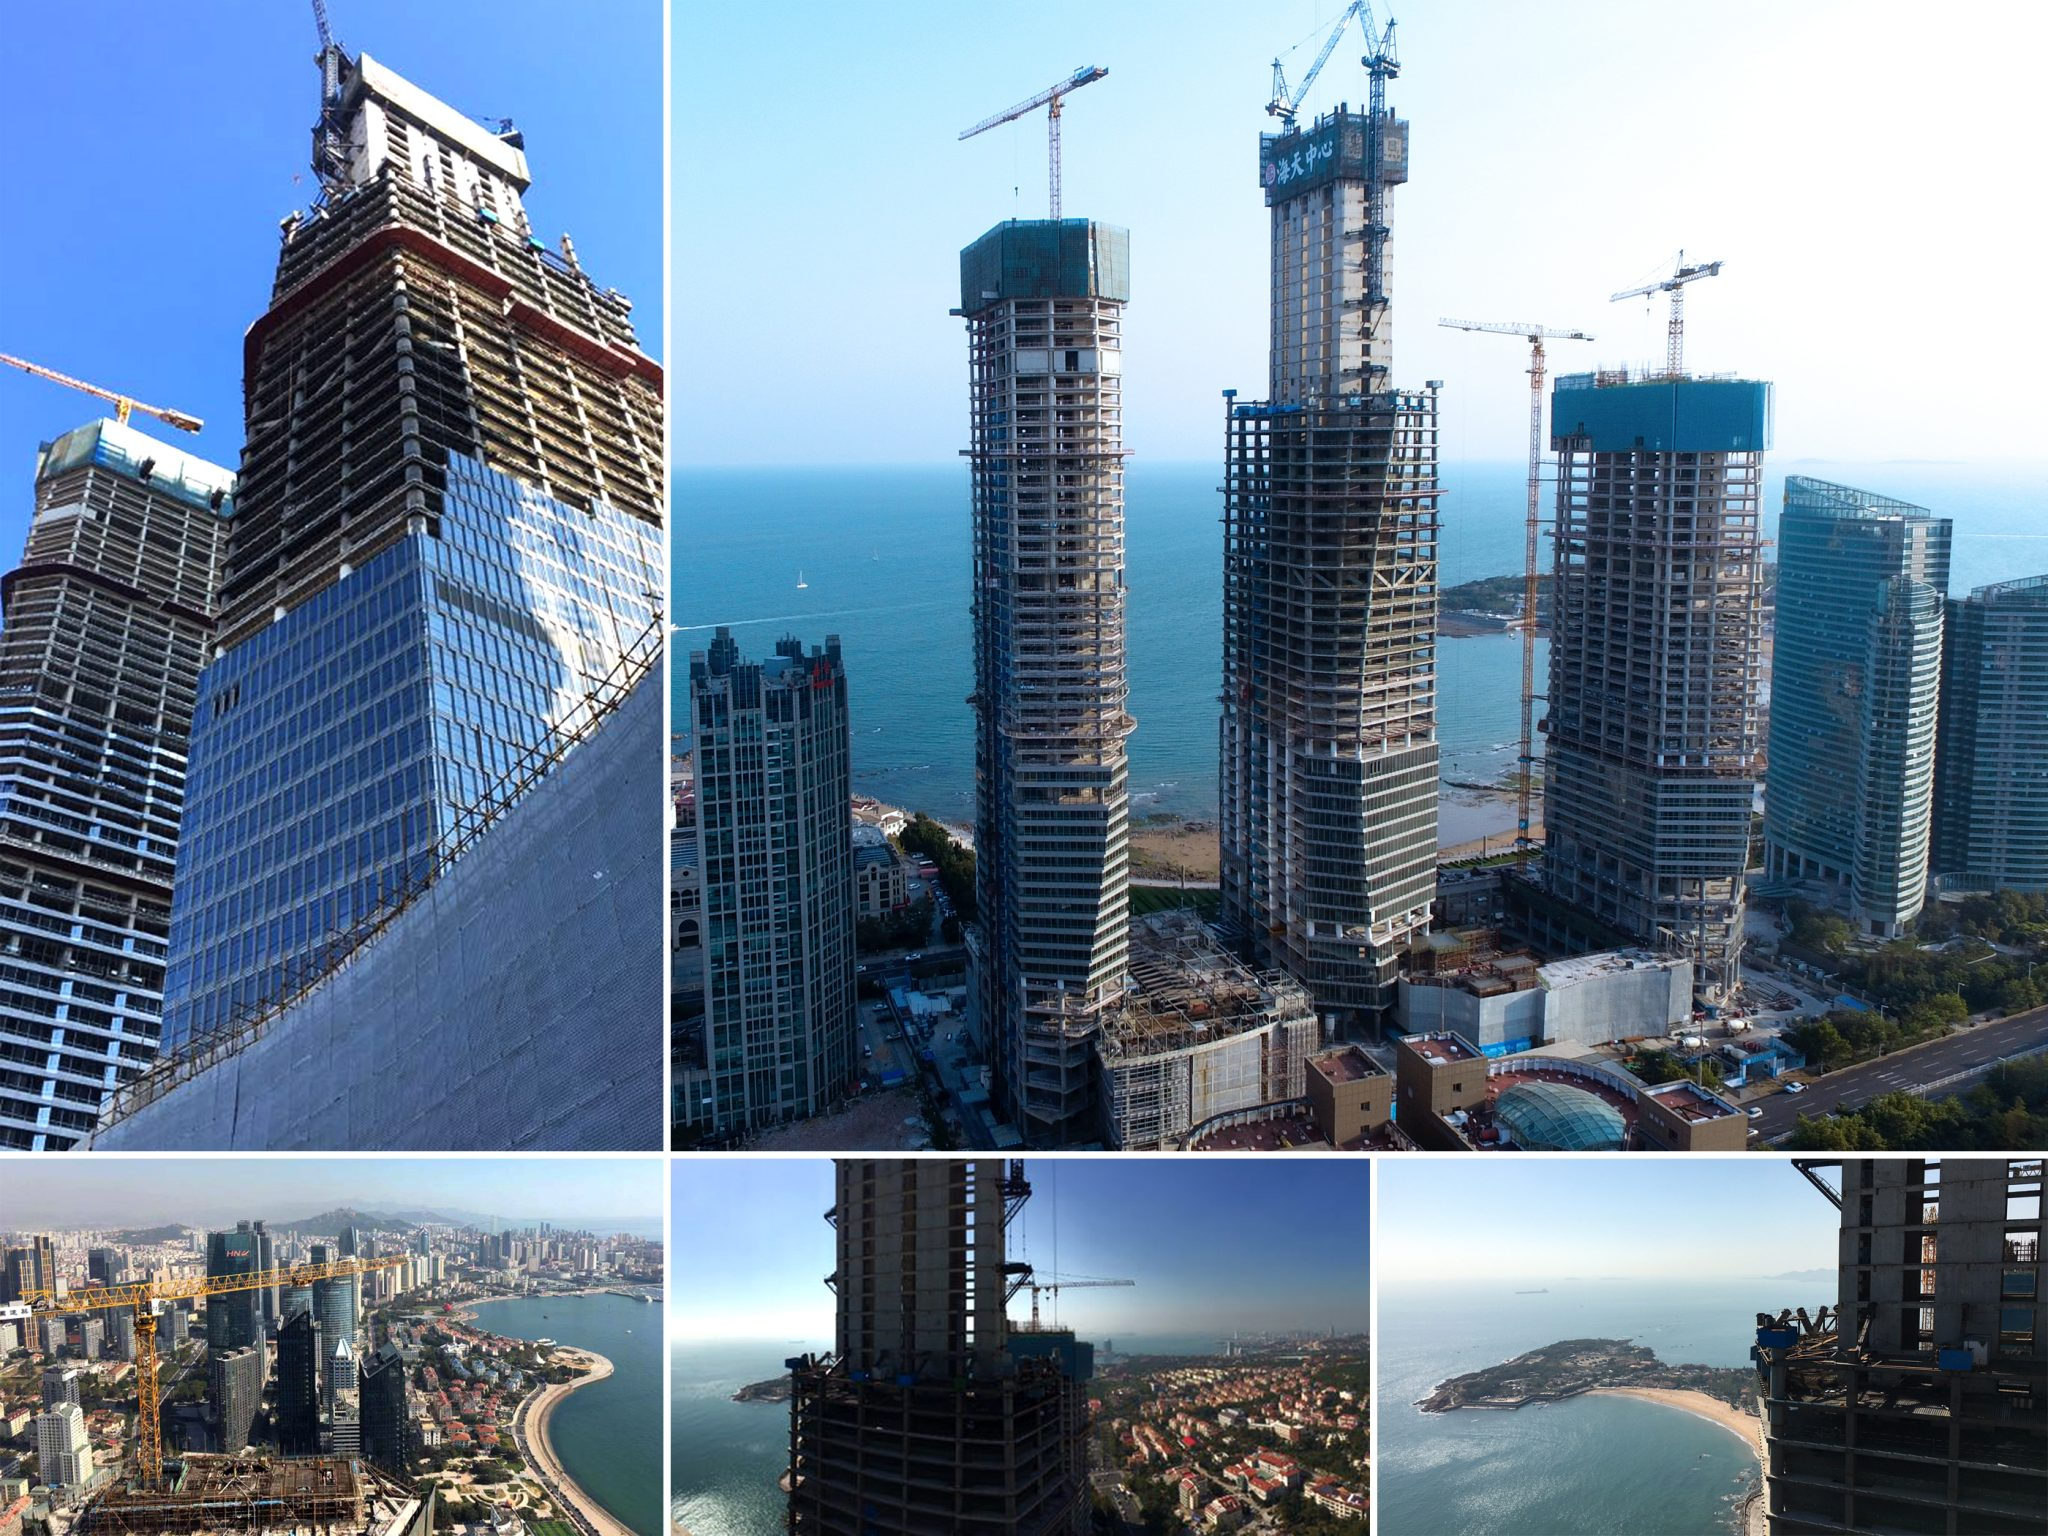 Construction progress on super high-rise project in Qingdao China